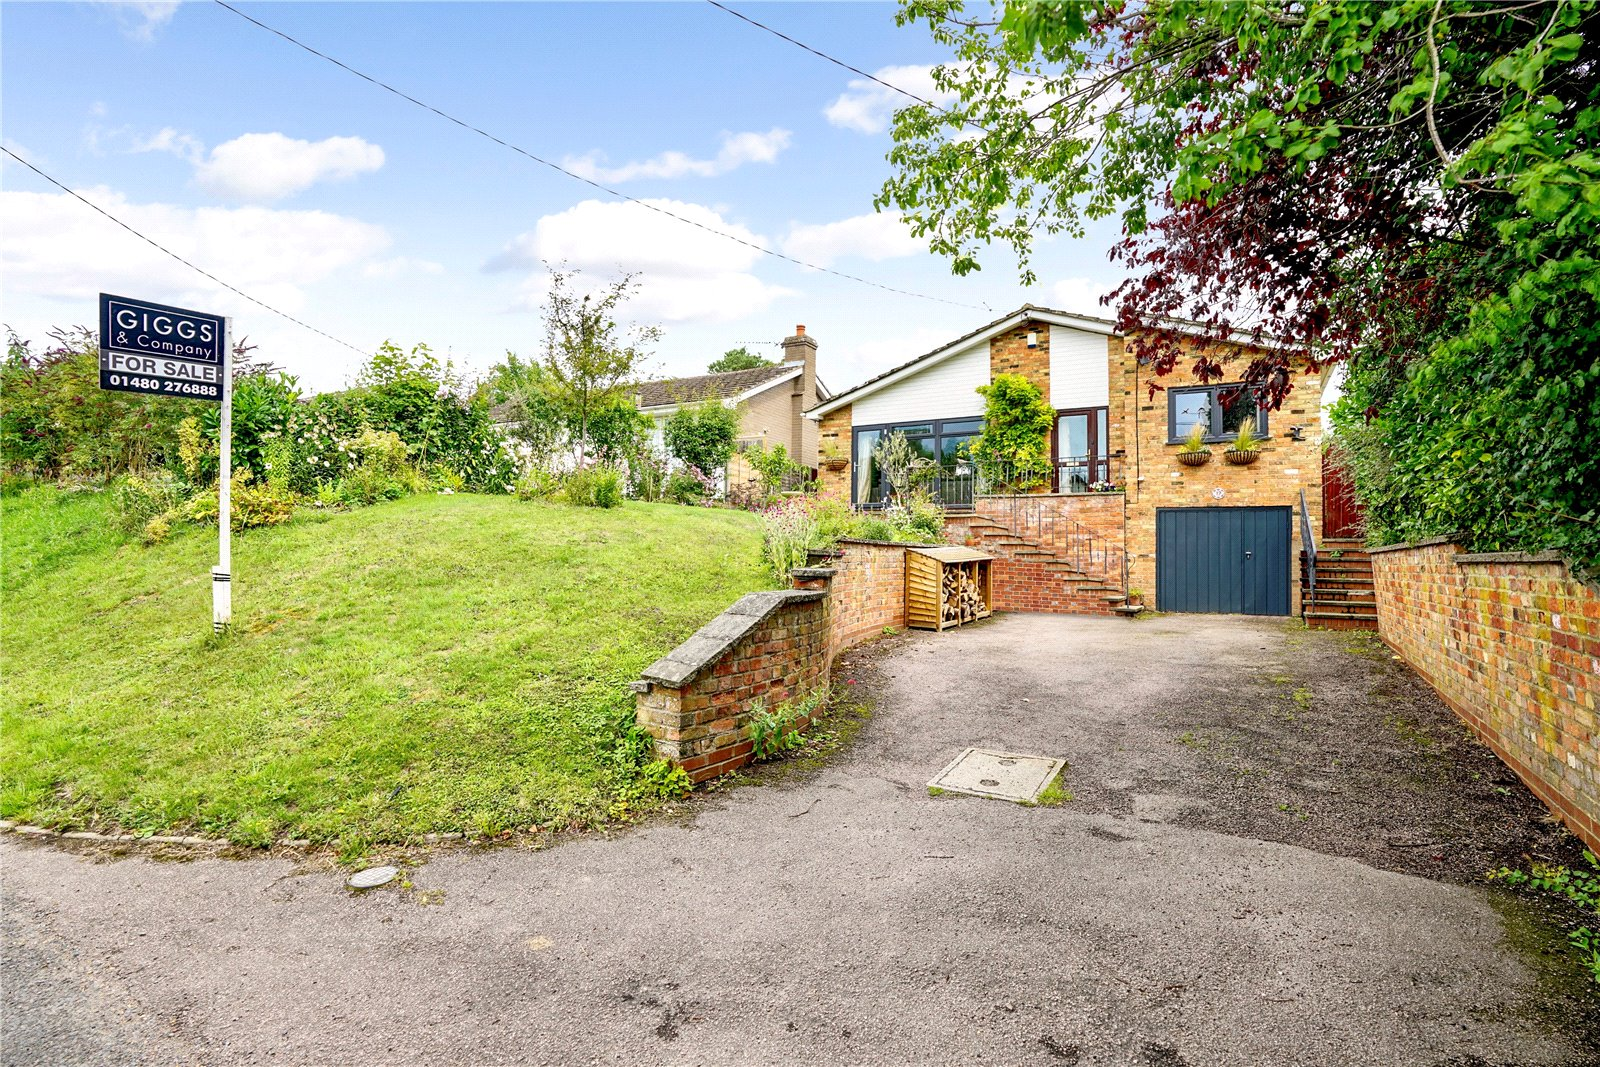 4 bed house for sale in Great Gransden, SG19 3AG - Property Image 1